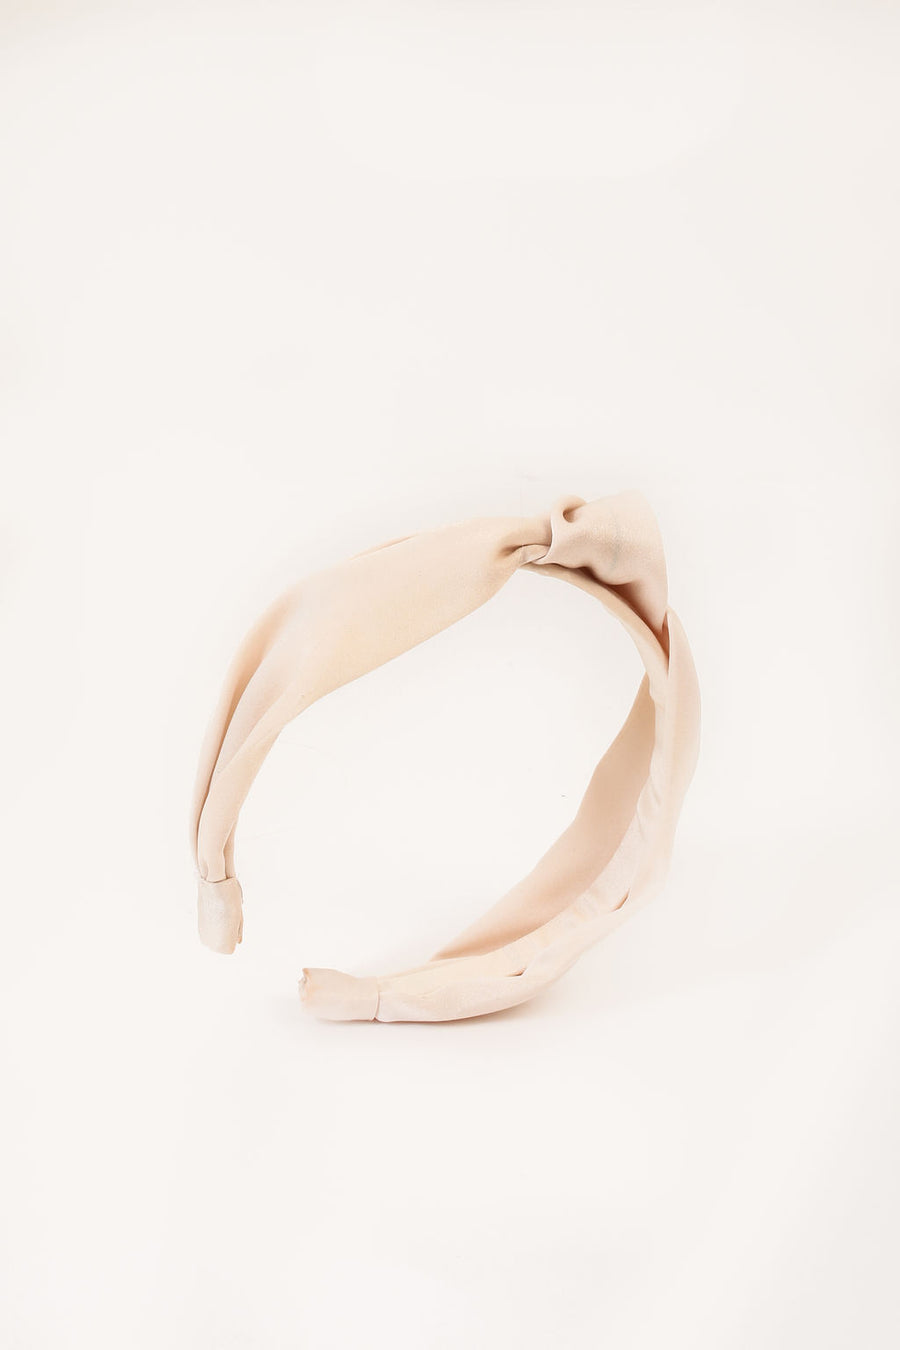 STEPHANIE HEADBAND CREAM POLYSATIN *LIMITED*EDITION*